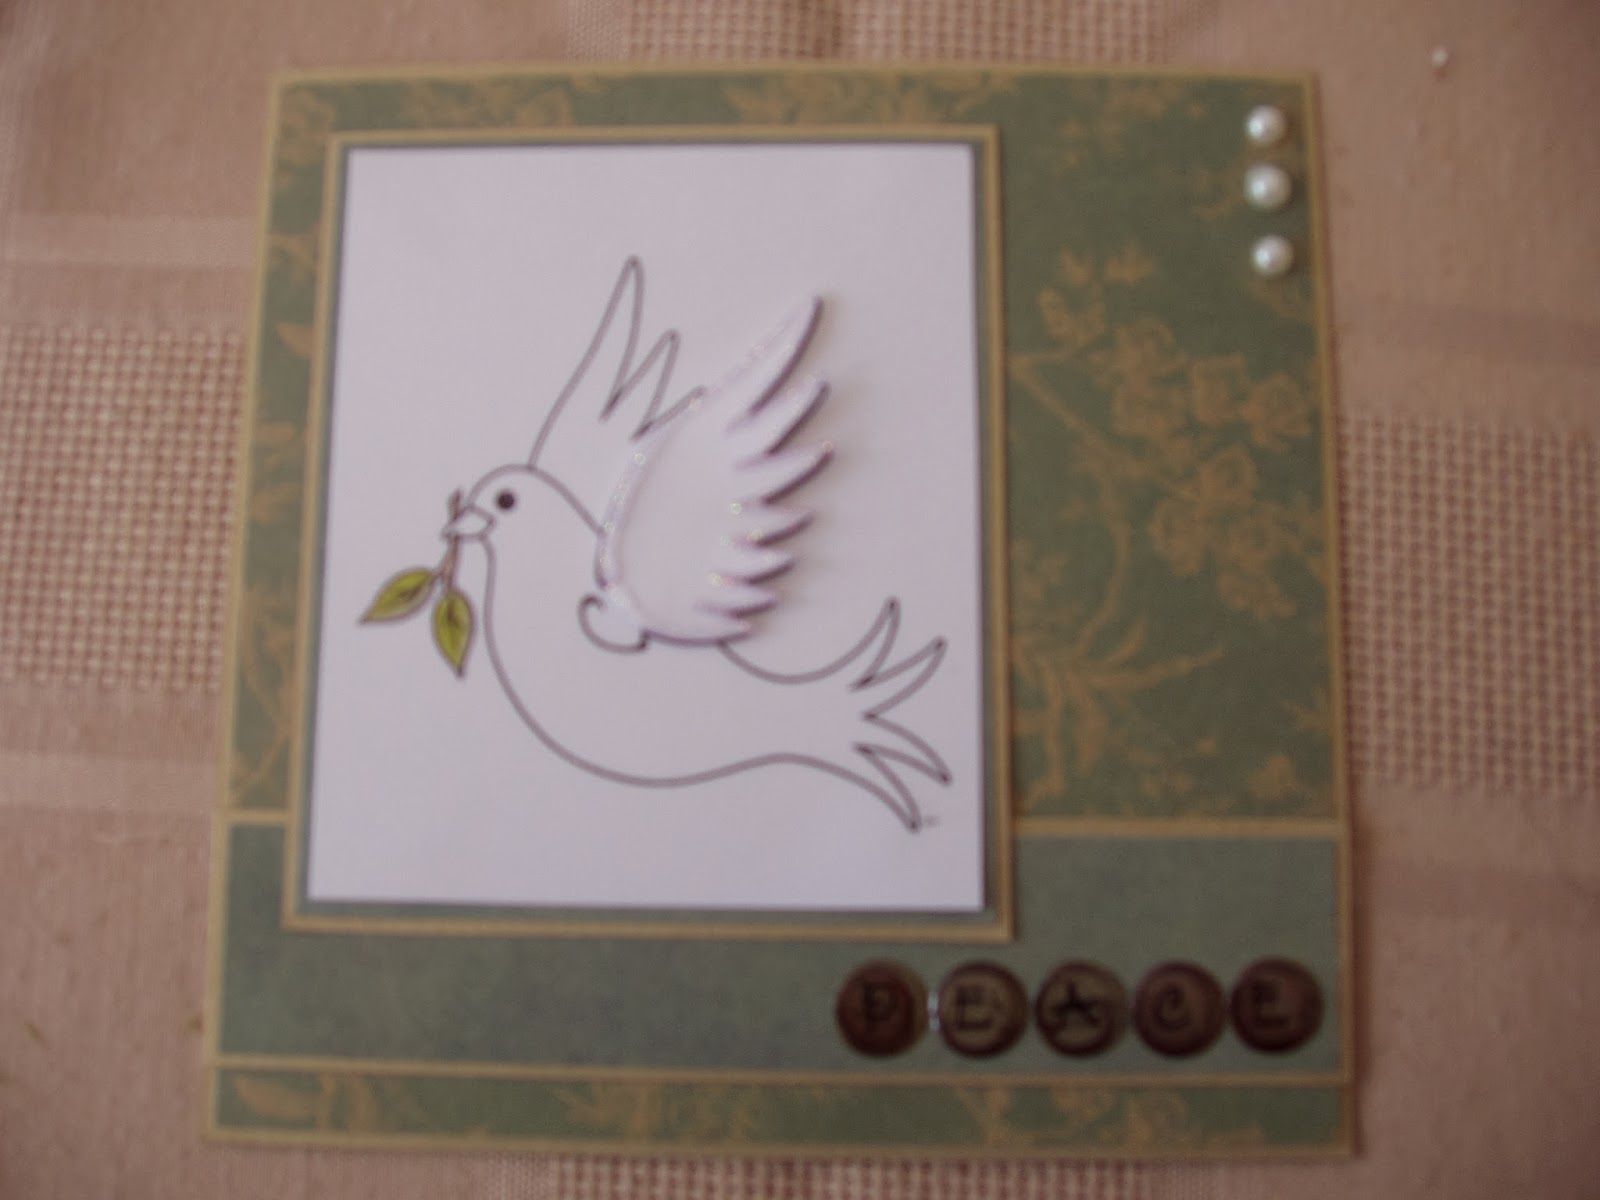 http://flossbites-cardmaking.blogspot.com/2013/02/peaceful-christmas-card.html